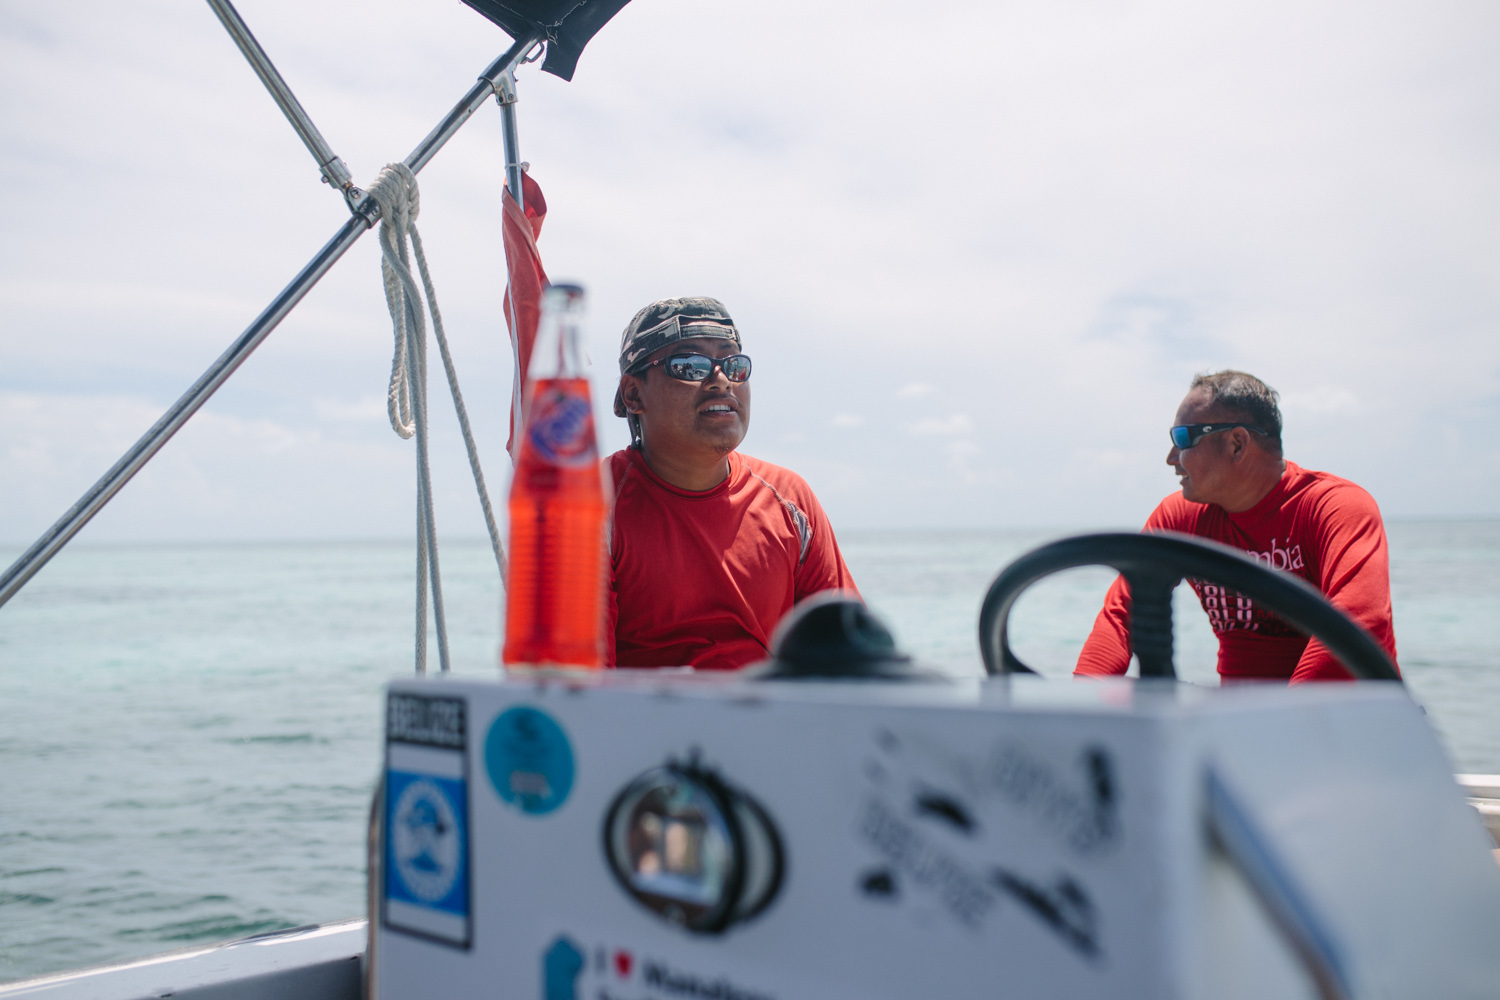 Snorkling with  French Angel Expedition